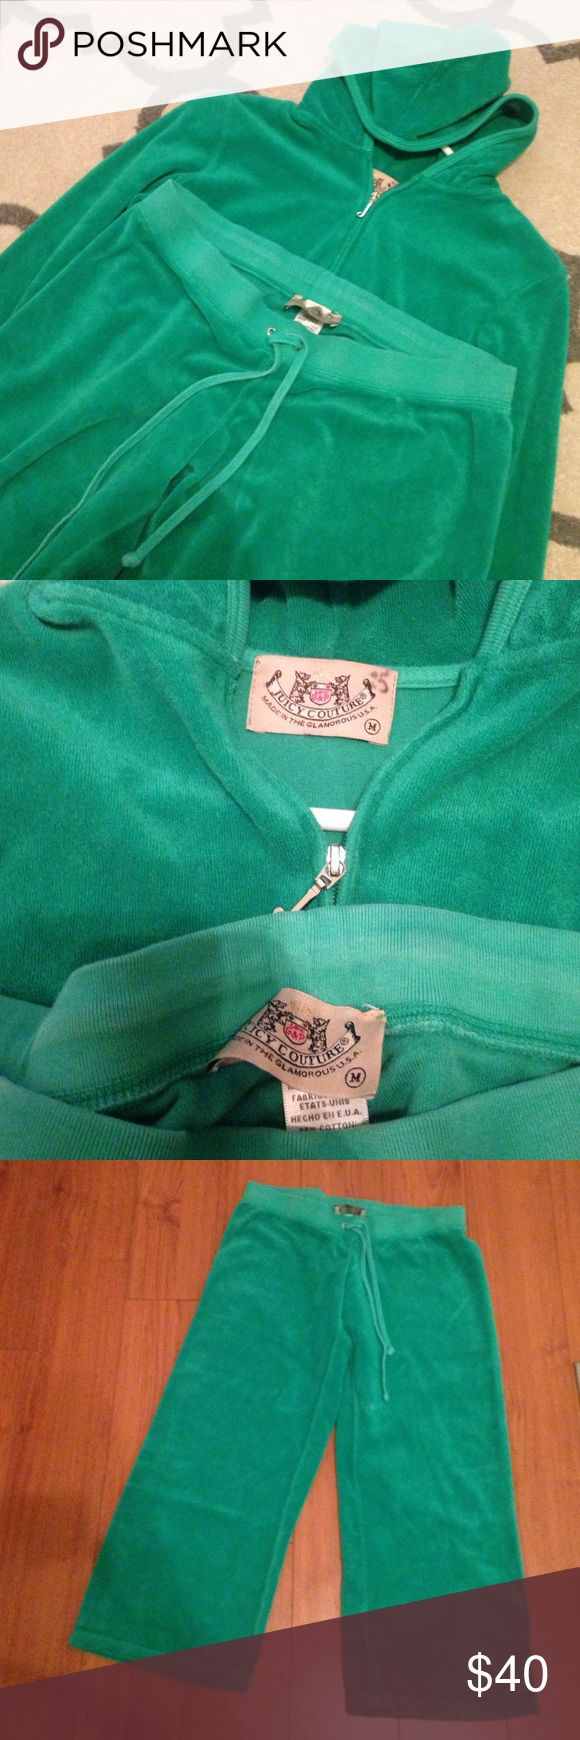 Juicy Couture velor tracksuit Juicy couture in a size medium. Green tracksuit is in great condition and super comfortable. The pants are capri length, they do not touch the ground. Juicy Couture Jackets & Coats